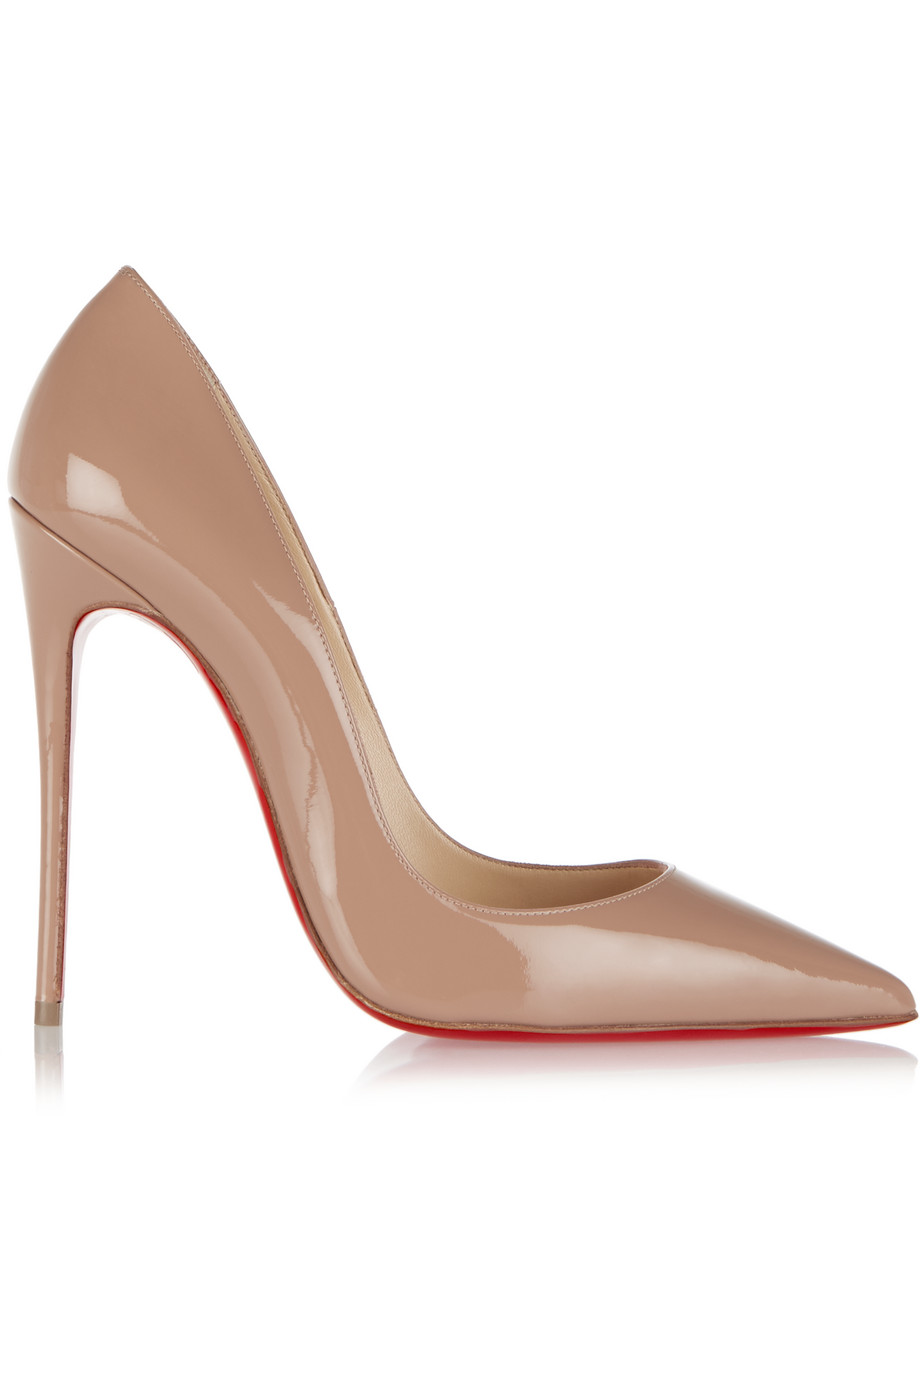 Christian Louboutin So Kate 120 Patent-Leather Pumps, Sand, Women's US Size: 7.5, Size: 38